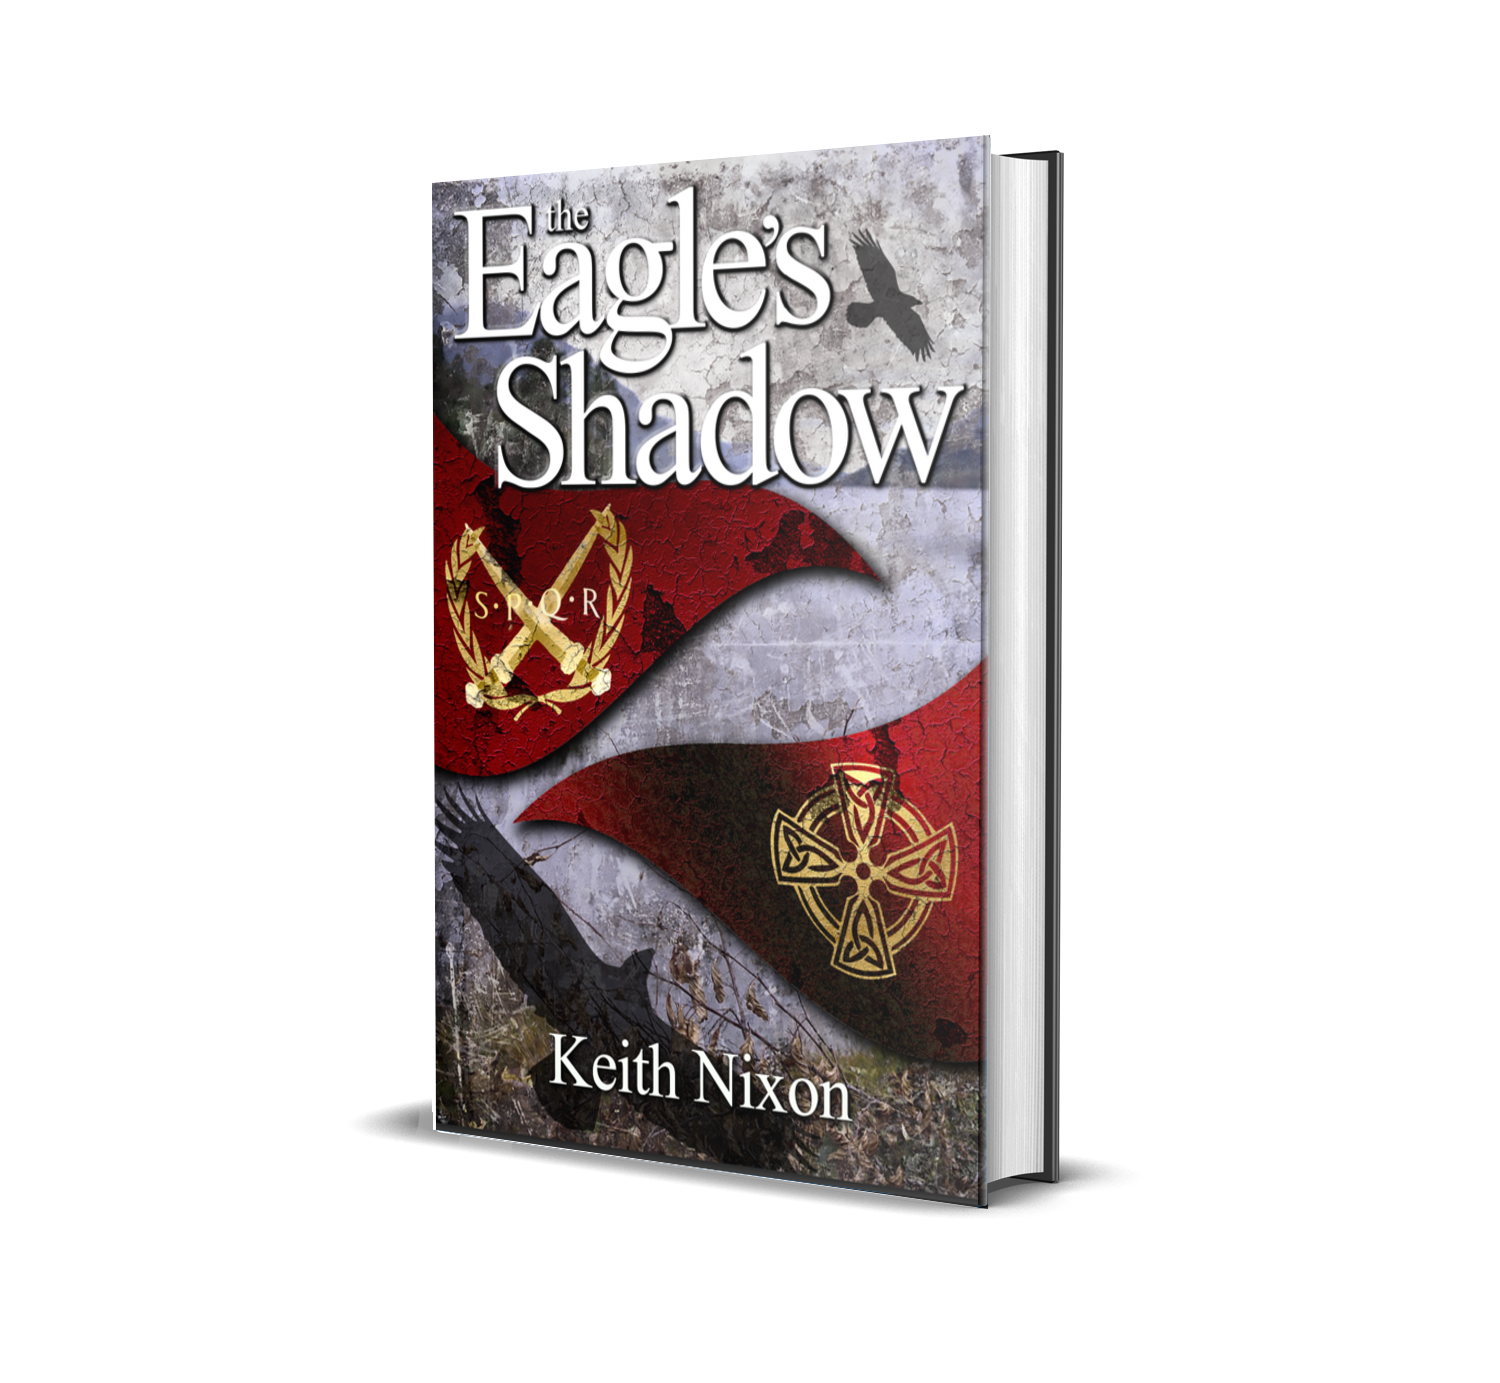 The Eagle's Shadow - In Rome a new Emperor, Claudius, accedes the throne. But he is politically weak, enemies who would take his place circle and plot. If he is to survive Claudius needs a triumph, one that marks him as a leader of men.Claudius's eye turns to the mysterious isle of Britannia, home of the supernatural Druids and brutal, wild-eyed warriors, reputed to fight naked. The place not even Julius Caesar could conquer.AD43 and a massive invasion force, commanded by Aulus Plautius, lands on a tiny corner of Britannia. Caradoc, King of the country's most powerful tribe, assembles an army to throw his enemy back over the water and into Gaul.But divisions are rife and there are those who are secretly working with the Romans for their own benefit. The very future of the country is at risk and only one man can safeguard it…